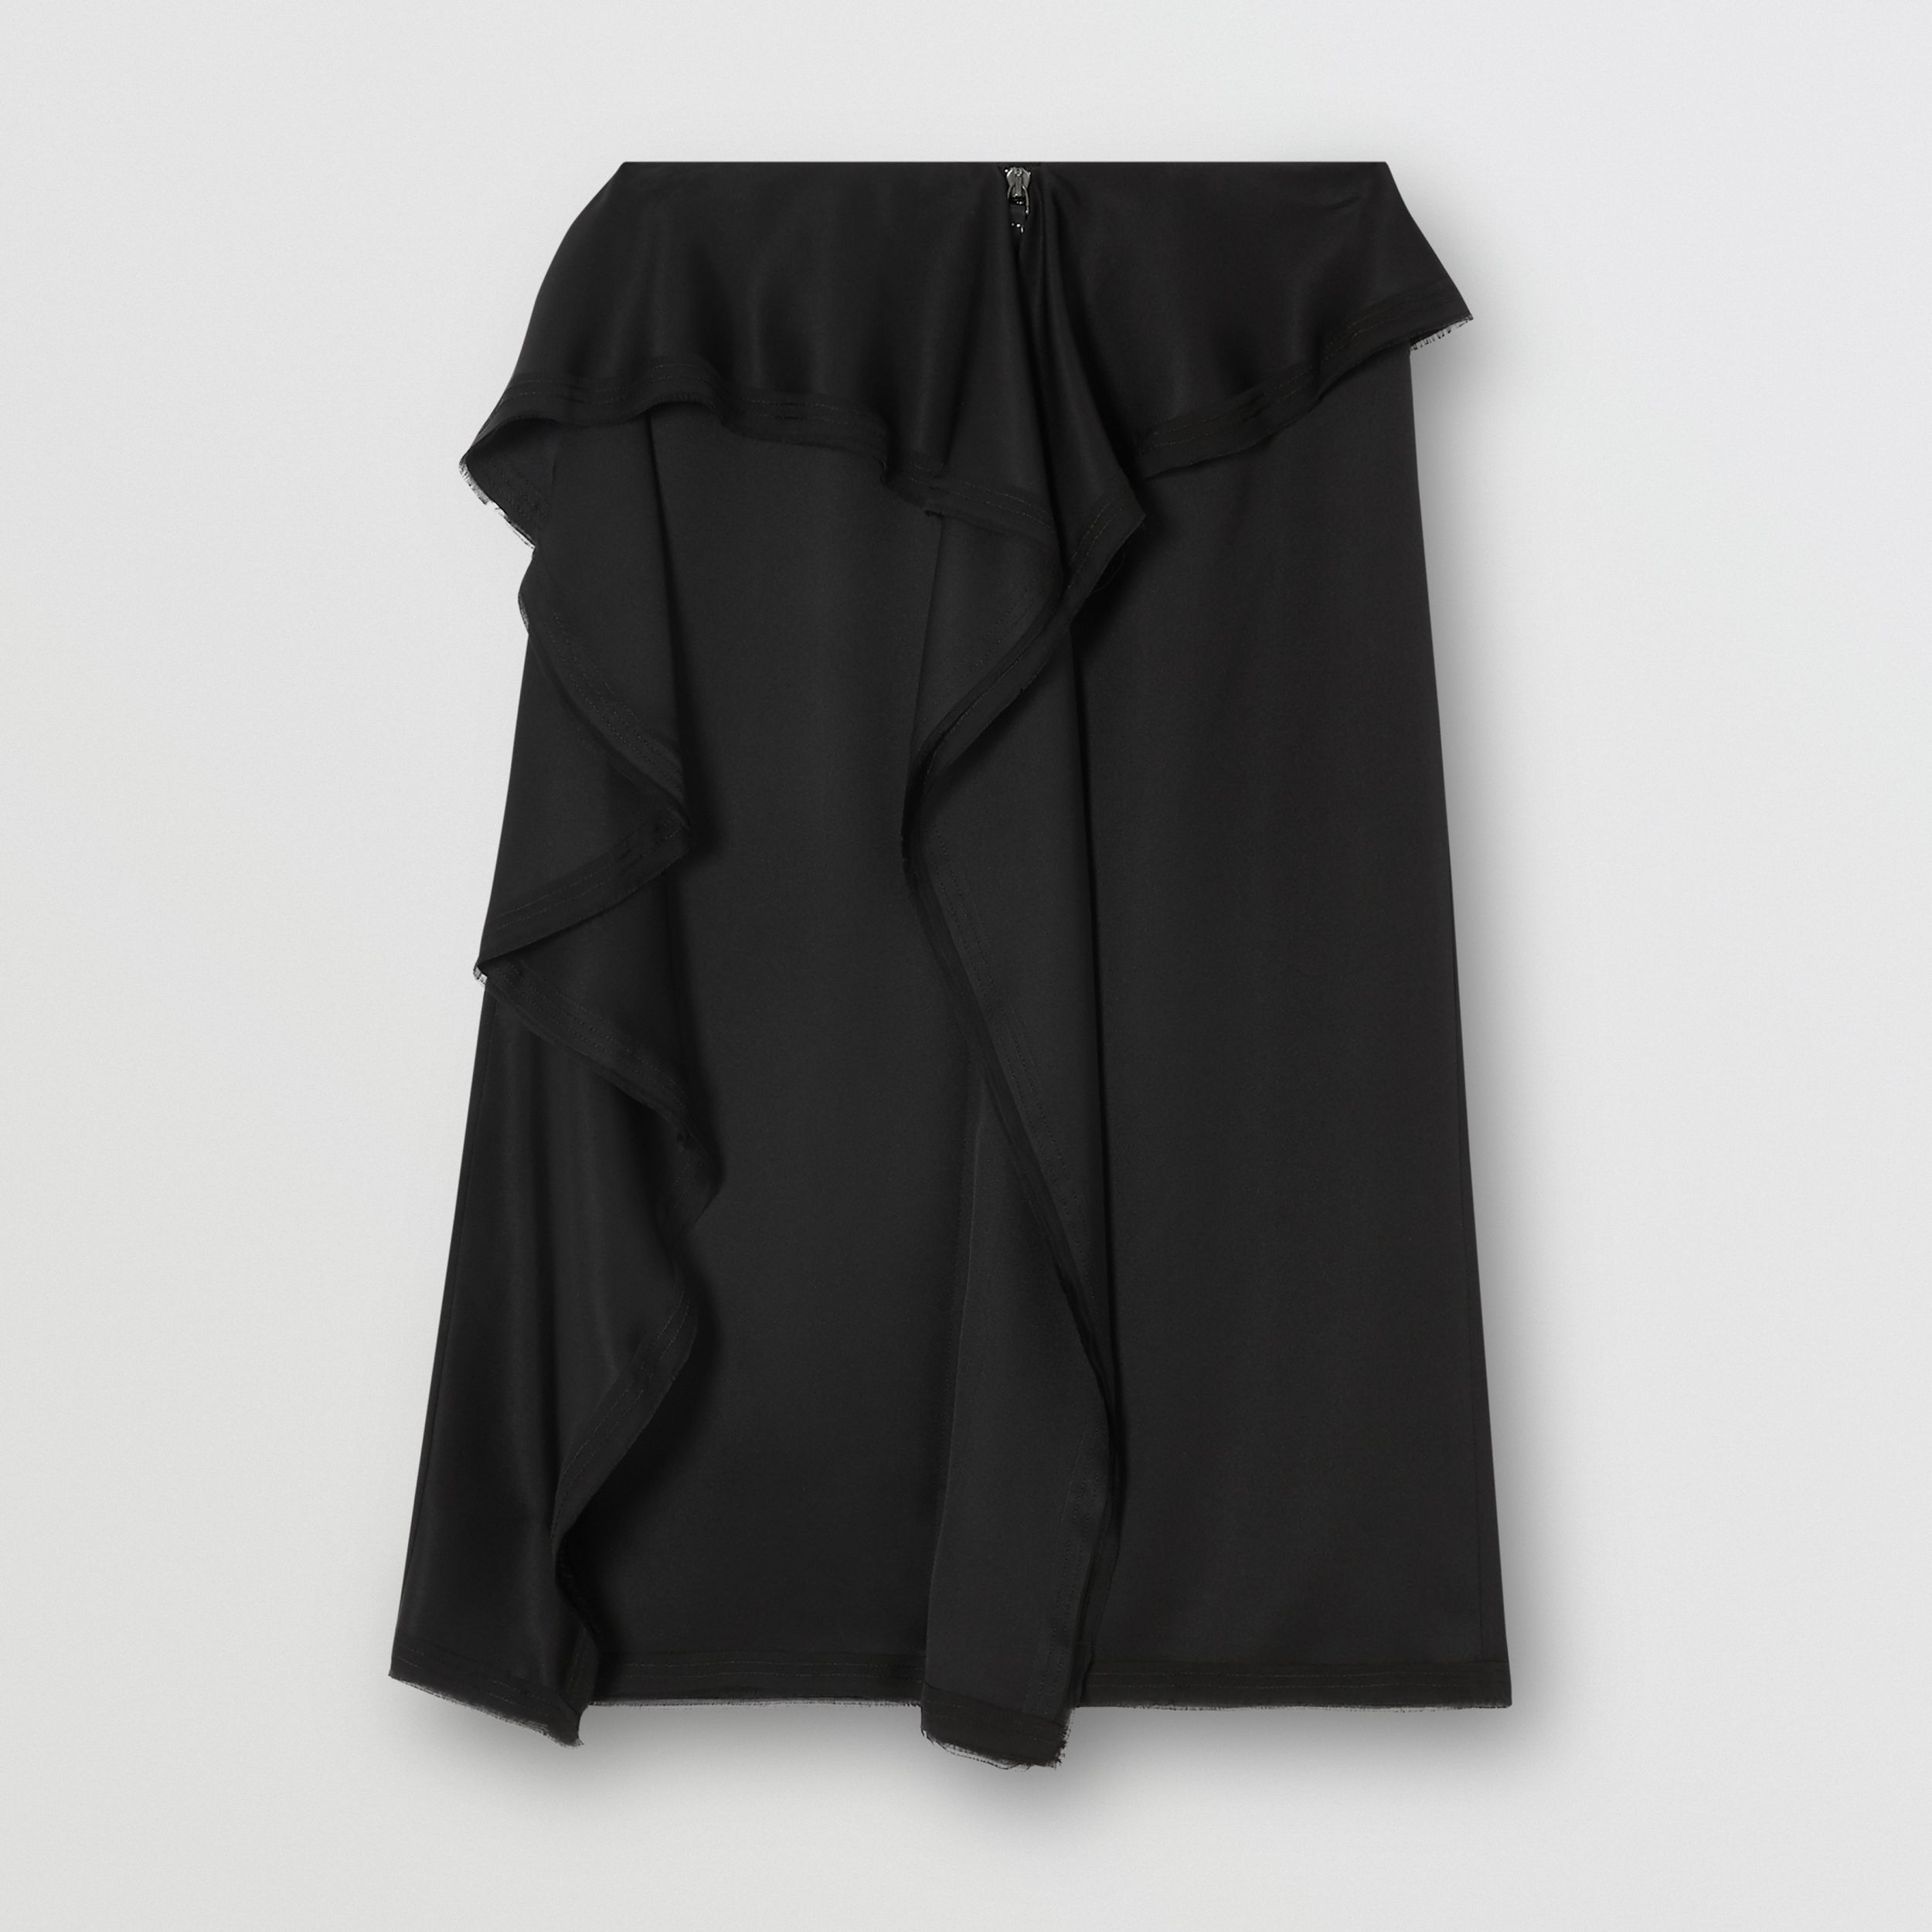 Ruffle Detail Silk Satin Pencil Skirt in Black - Women | Burberry - 4